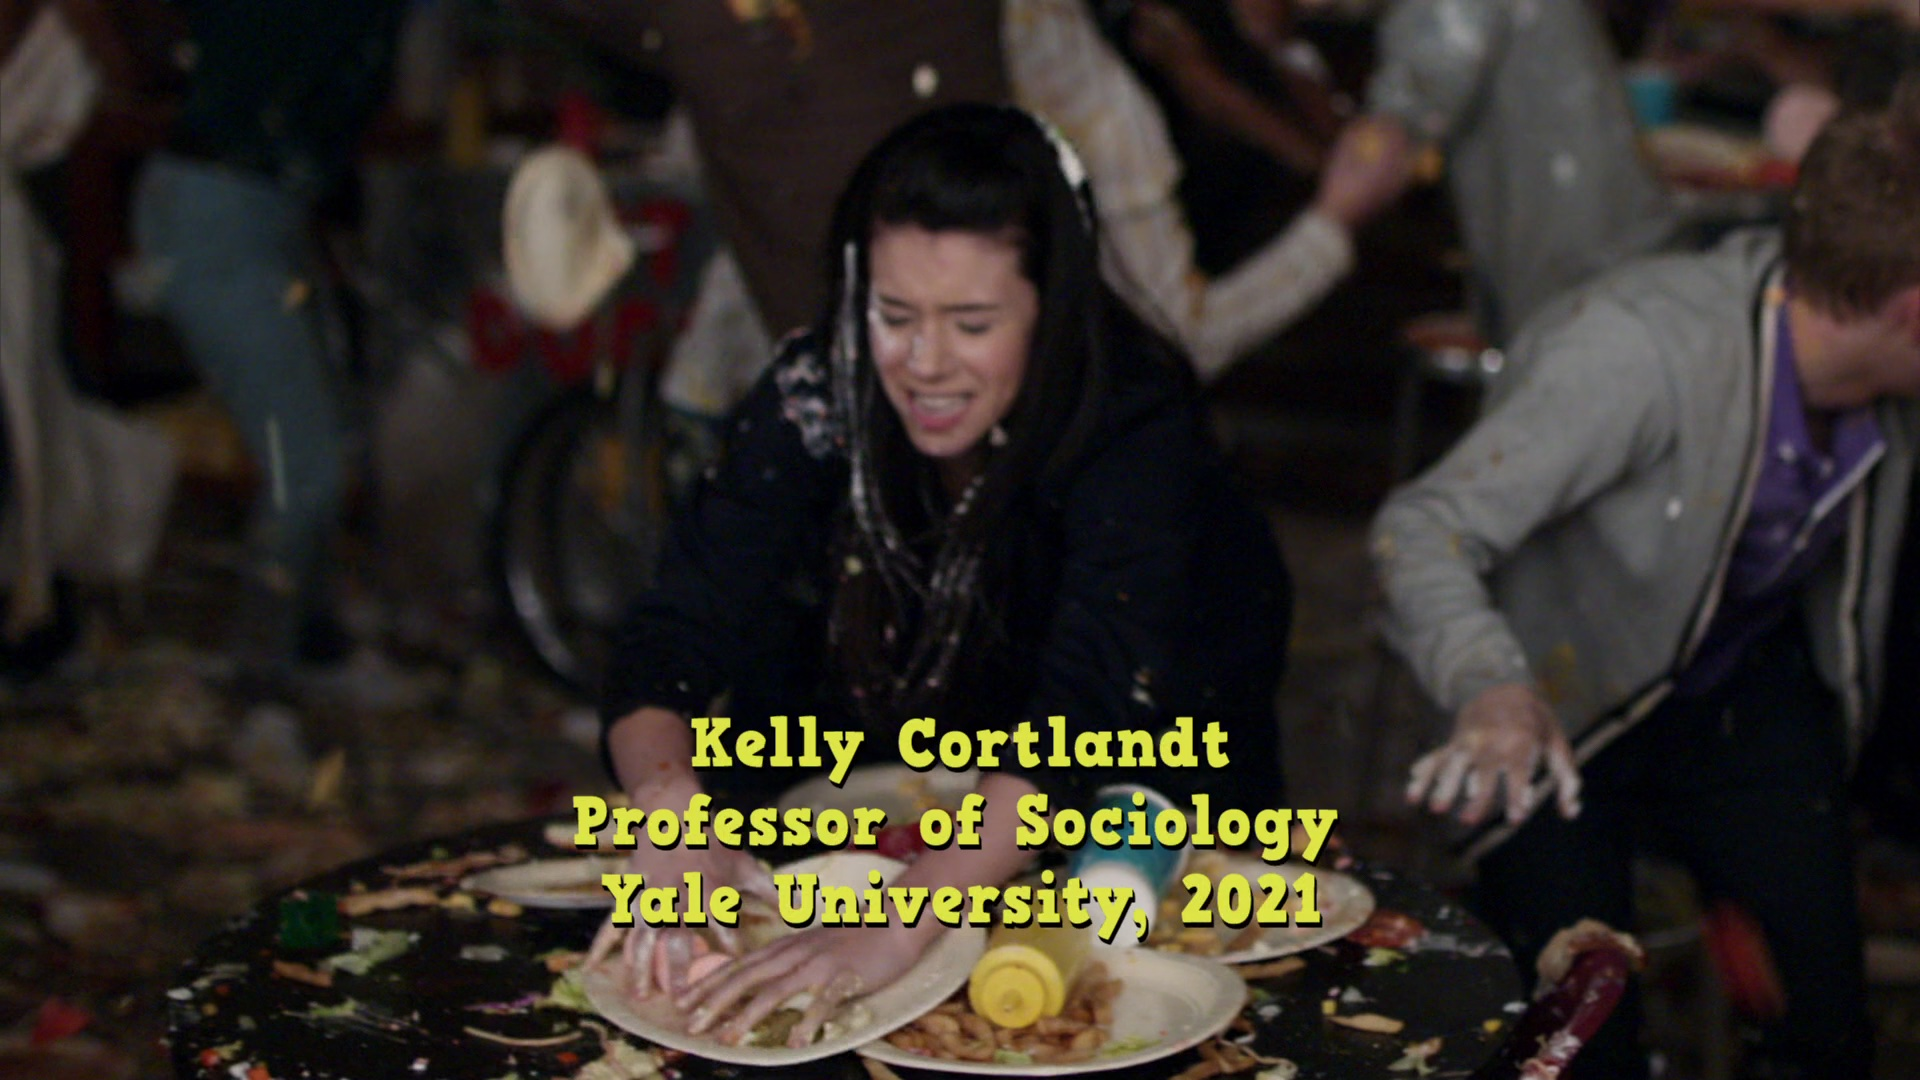 File:1x22-Kelly Cortlandt.jpg